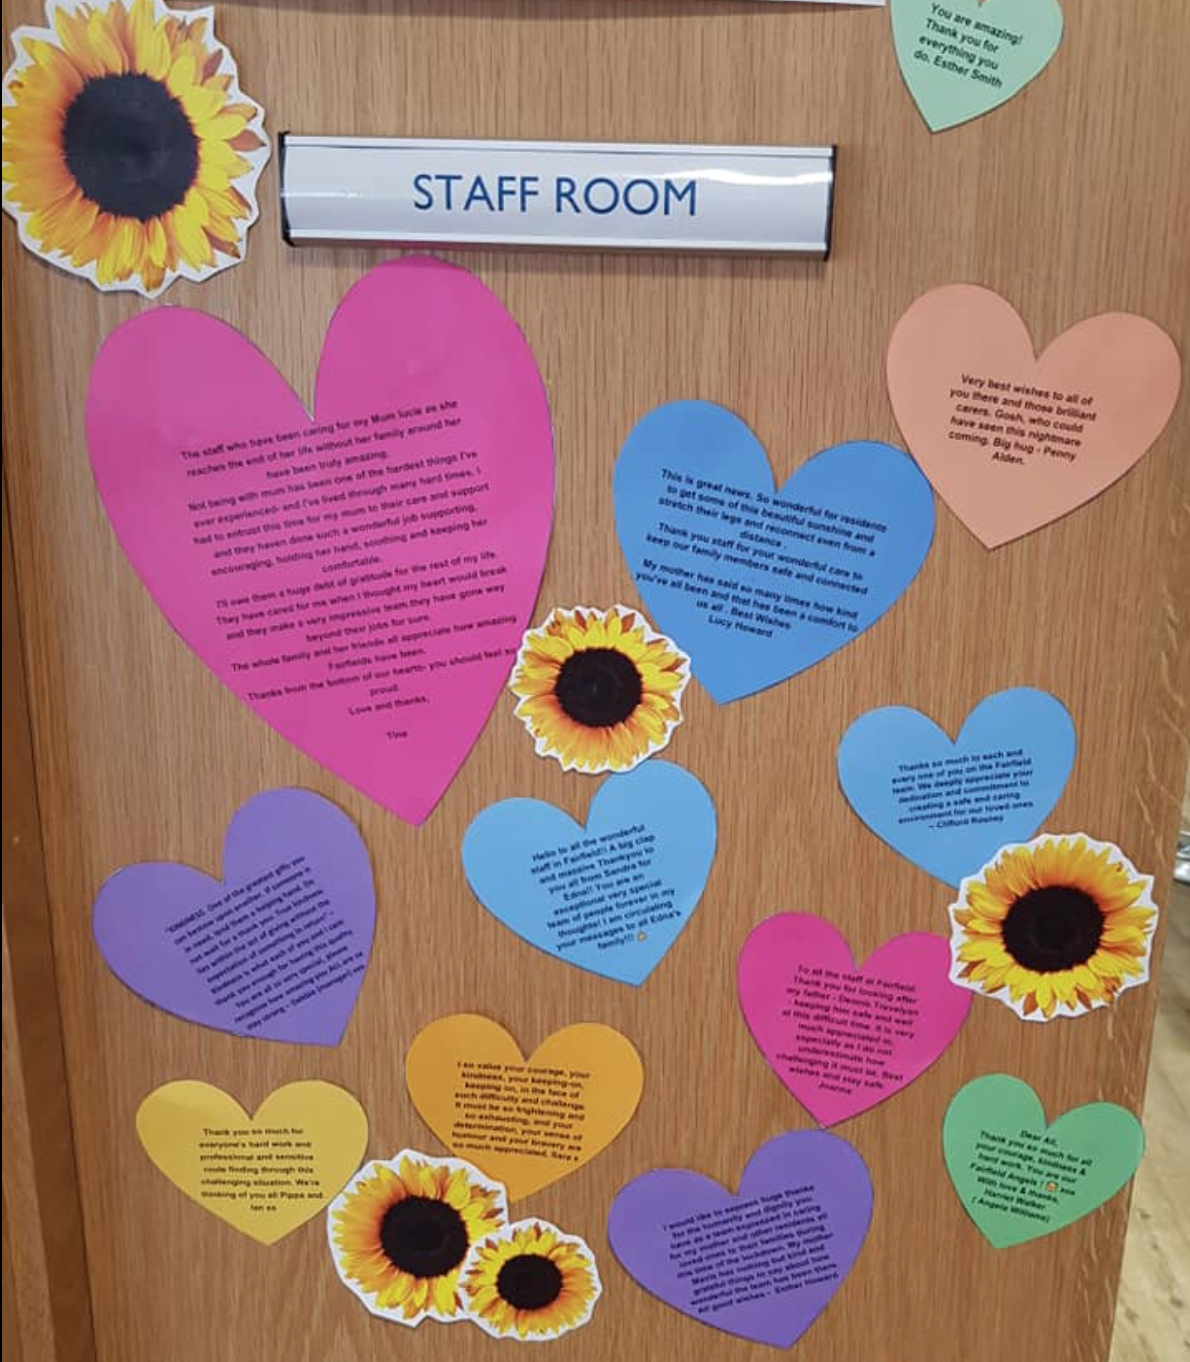 Thank you messages for Fairfield staff